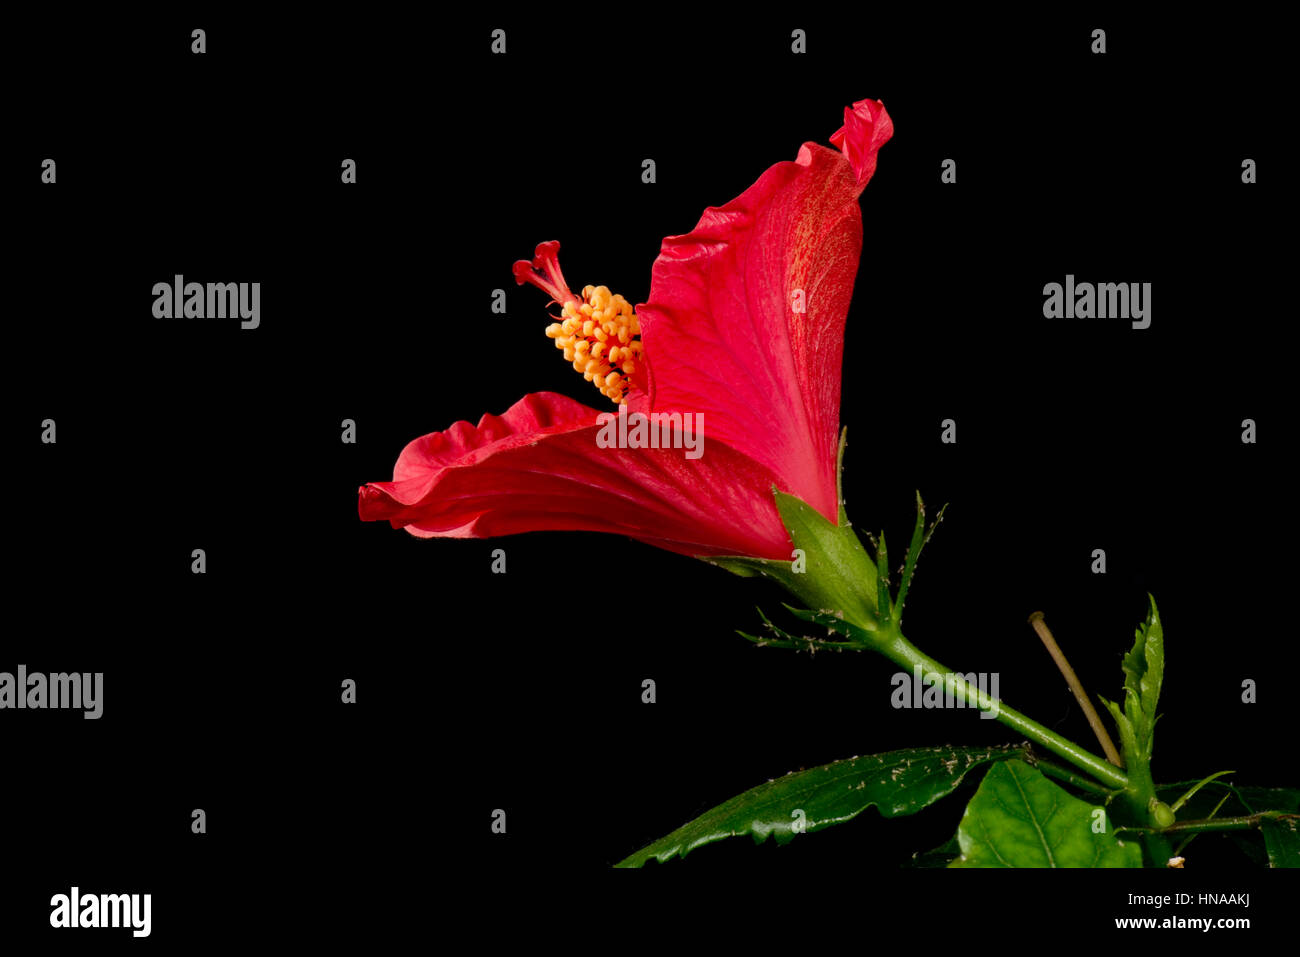 Flower Bud Red Hibiscus Rosa Sinensis Stock Photos Flower Bud Red